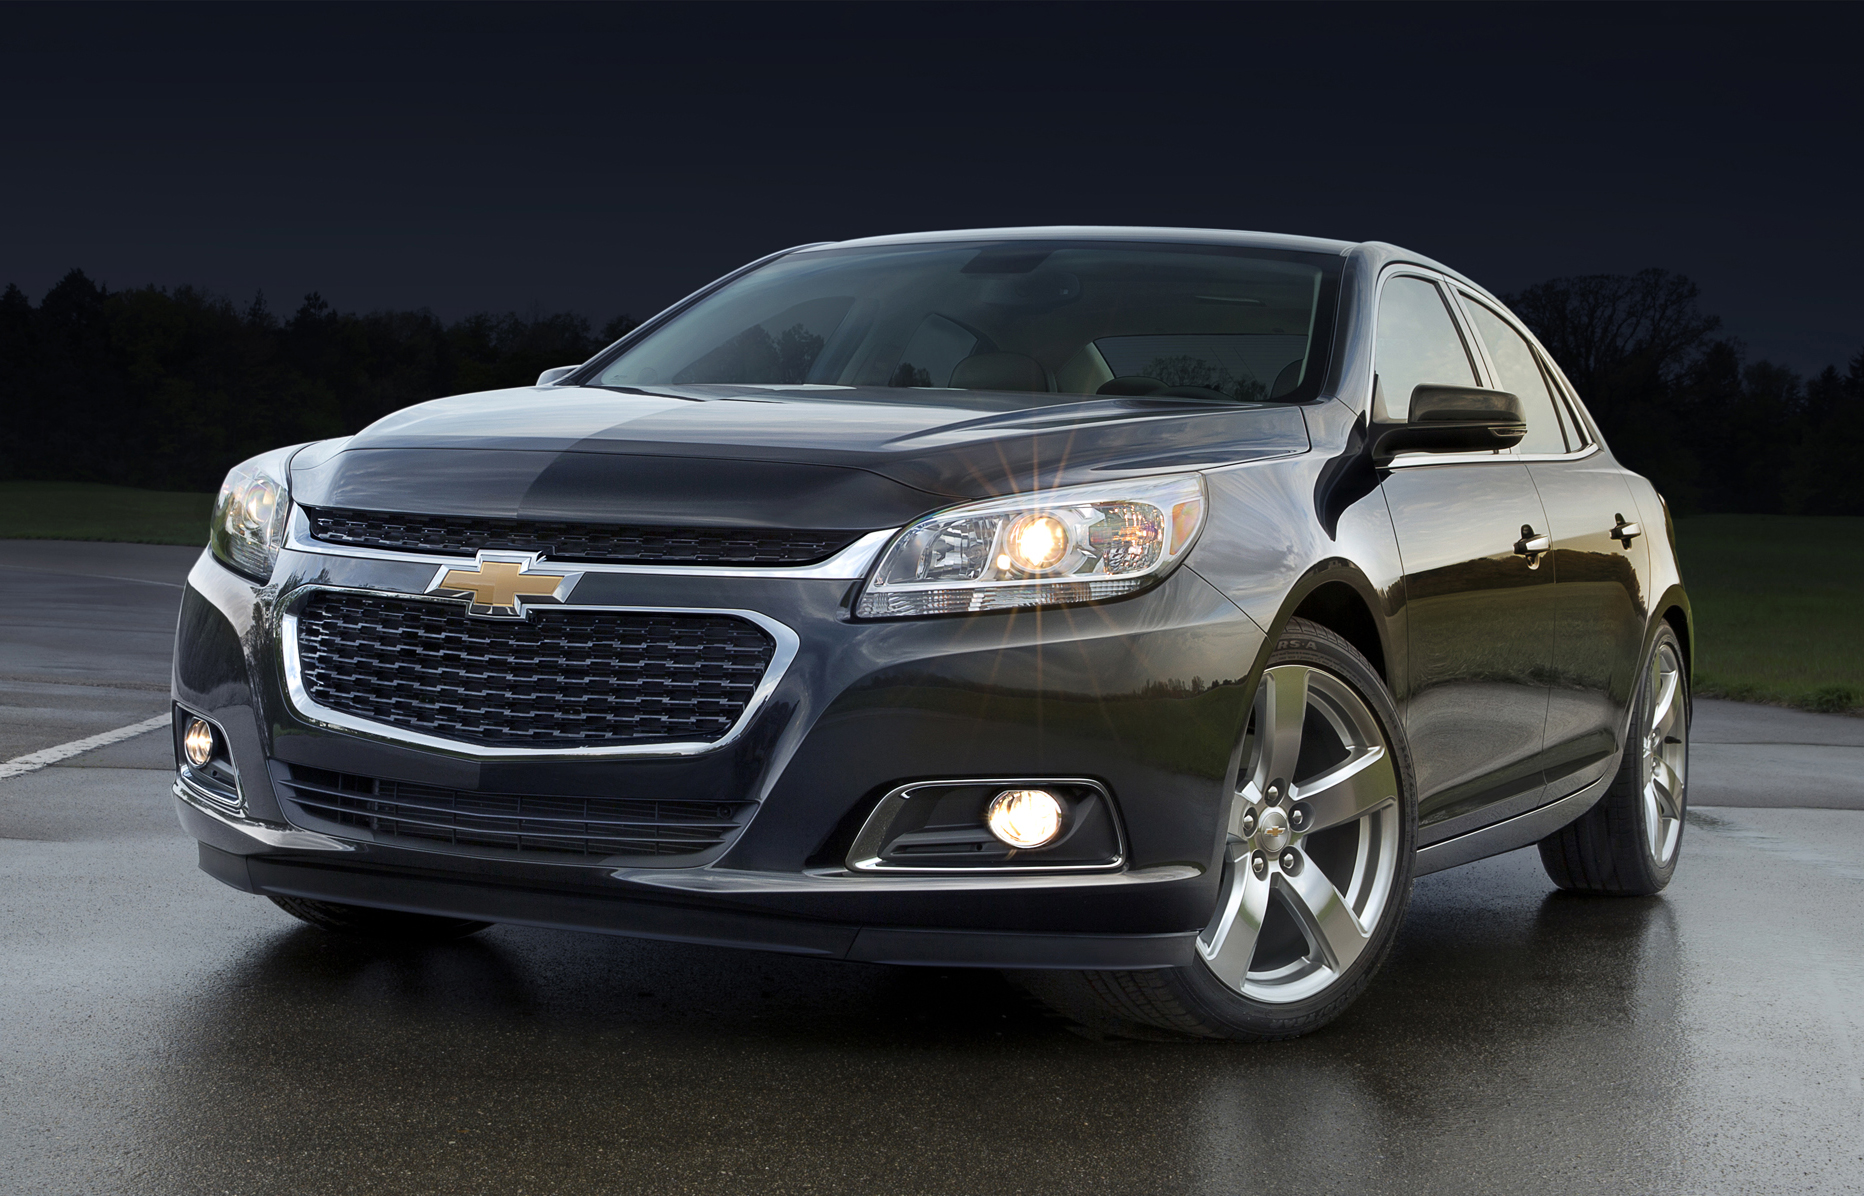 news 2014 holden malibu new engine and hands free texting. Black Bedroom Furniture Sets. Home Design Ideas